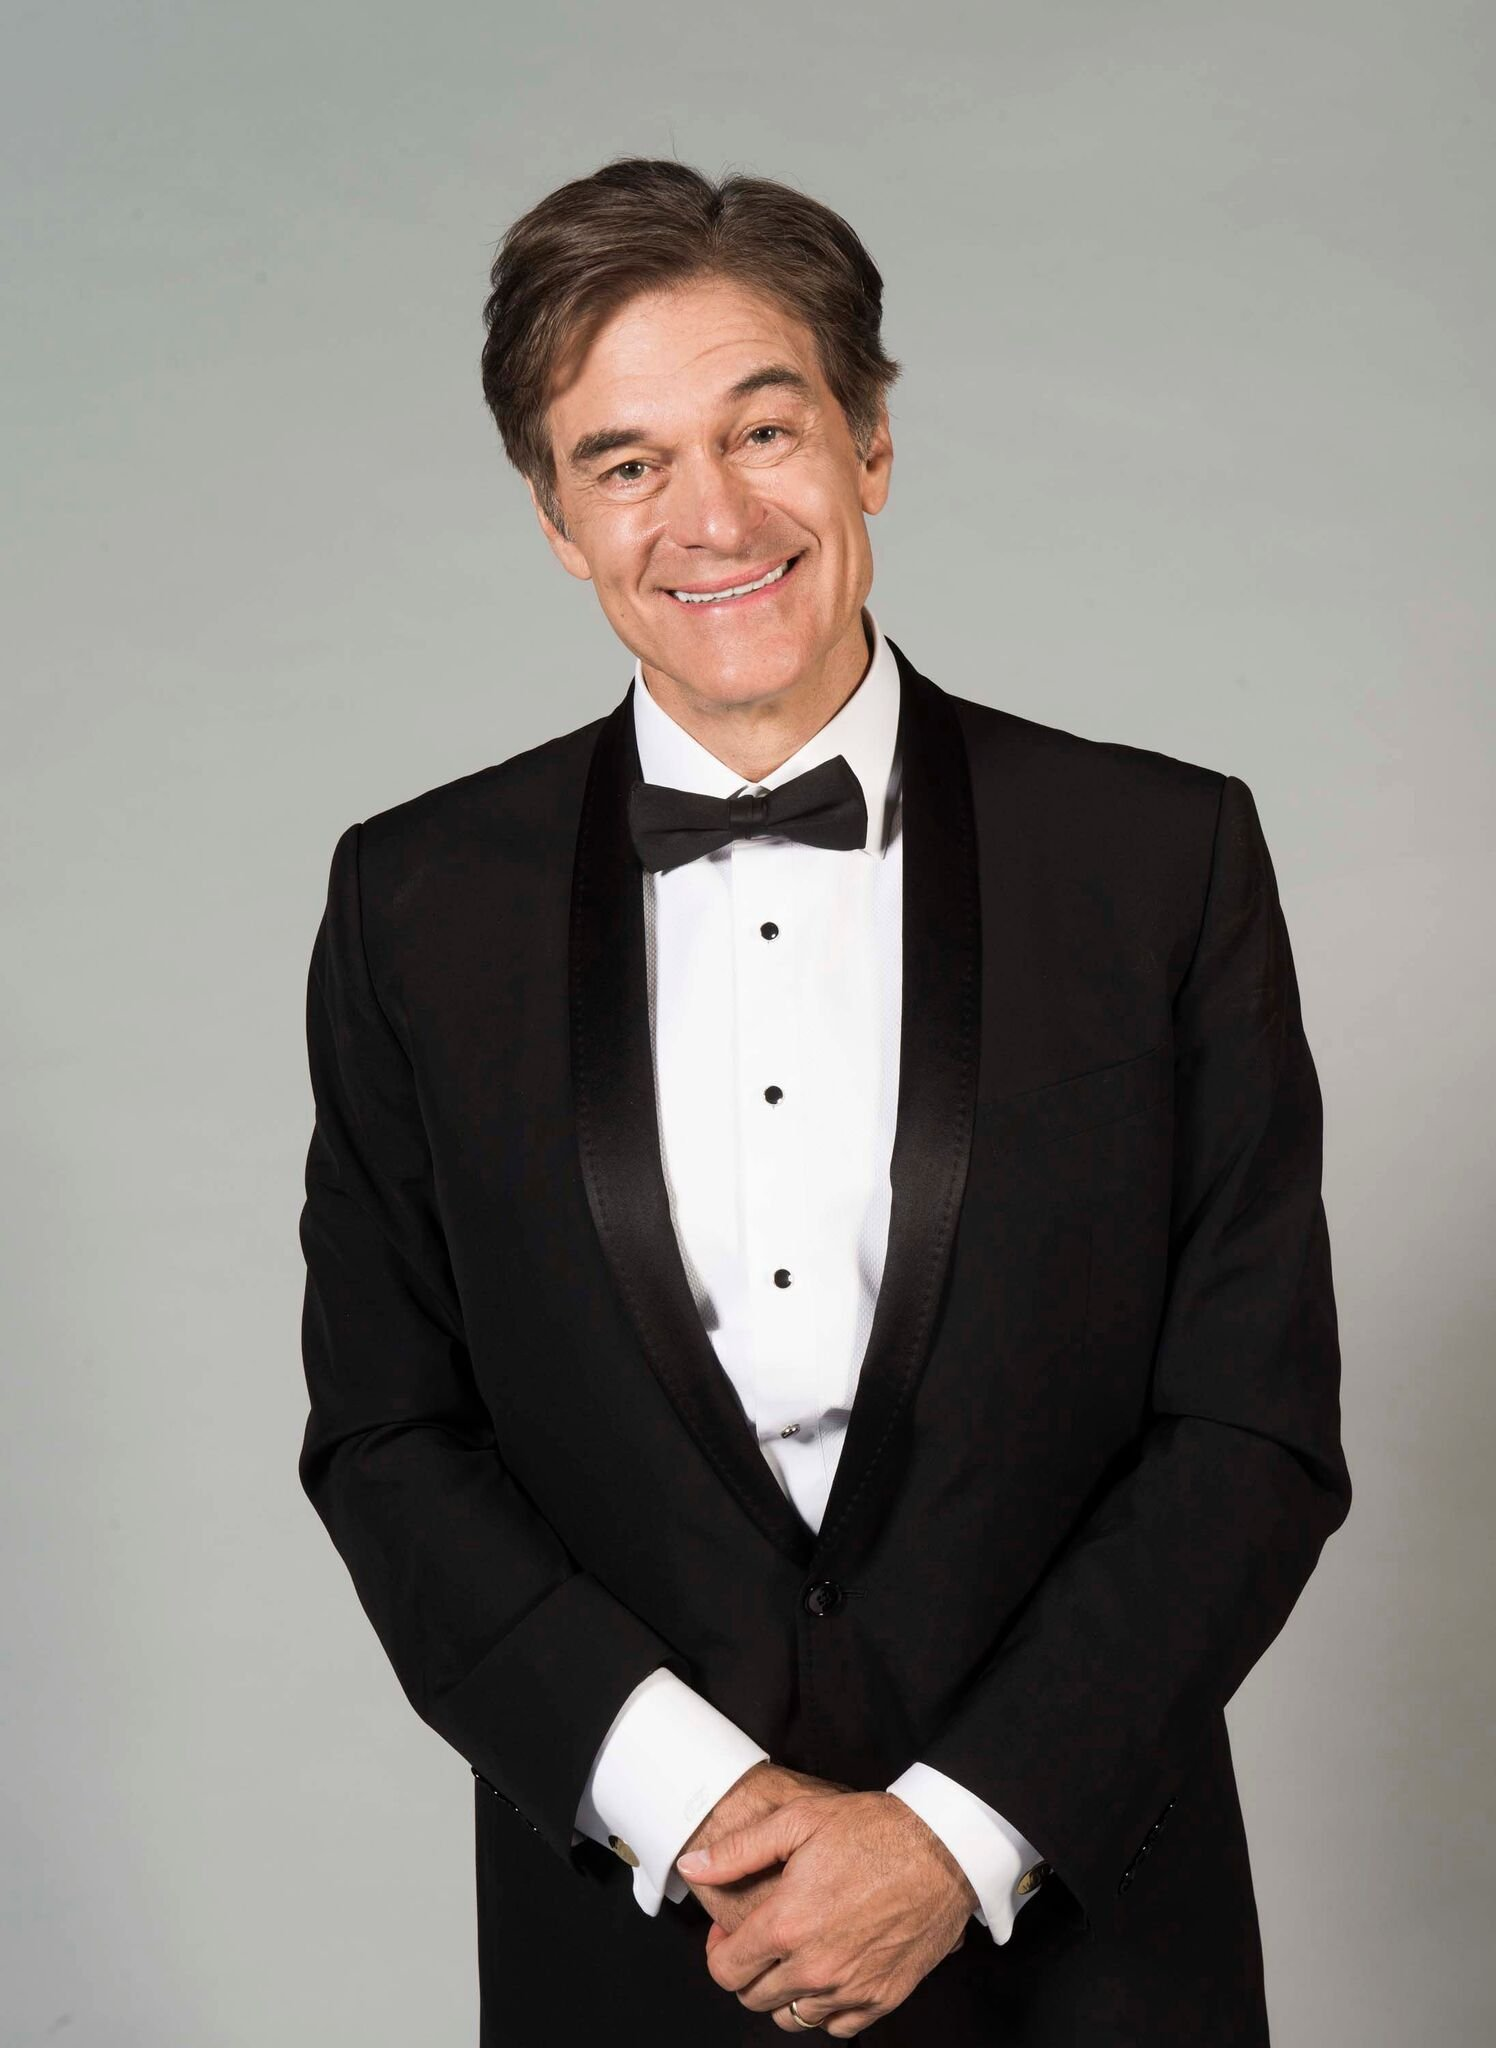 Dr. Oz poses for portrait at 45th Daytime Emmy Awards - Portraits by The Artists Project Sponsored by the Visual Snow Initiative | Getty Images